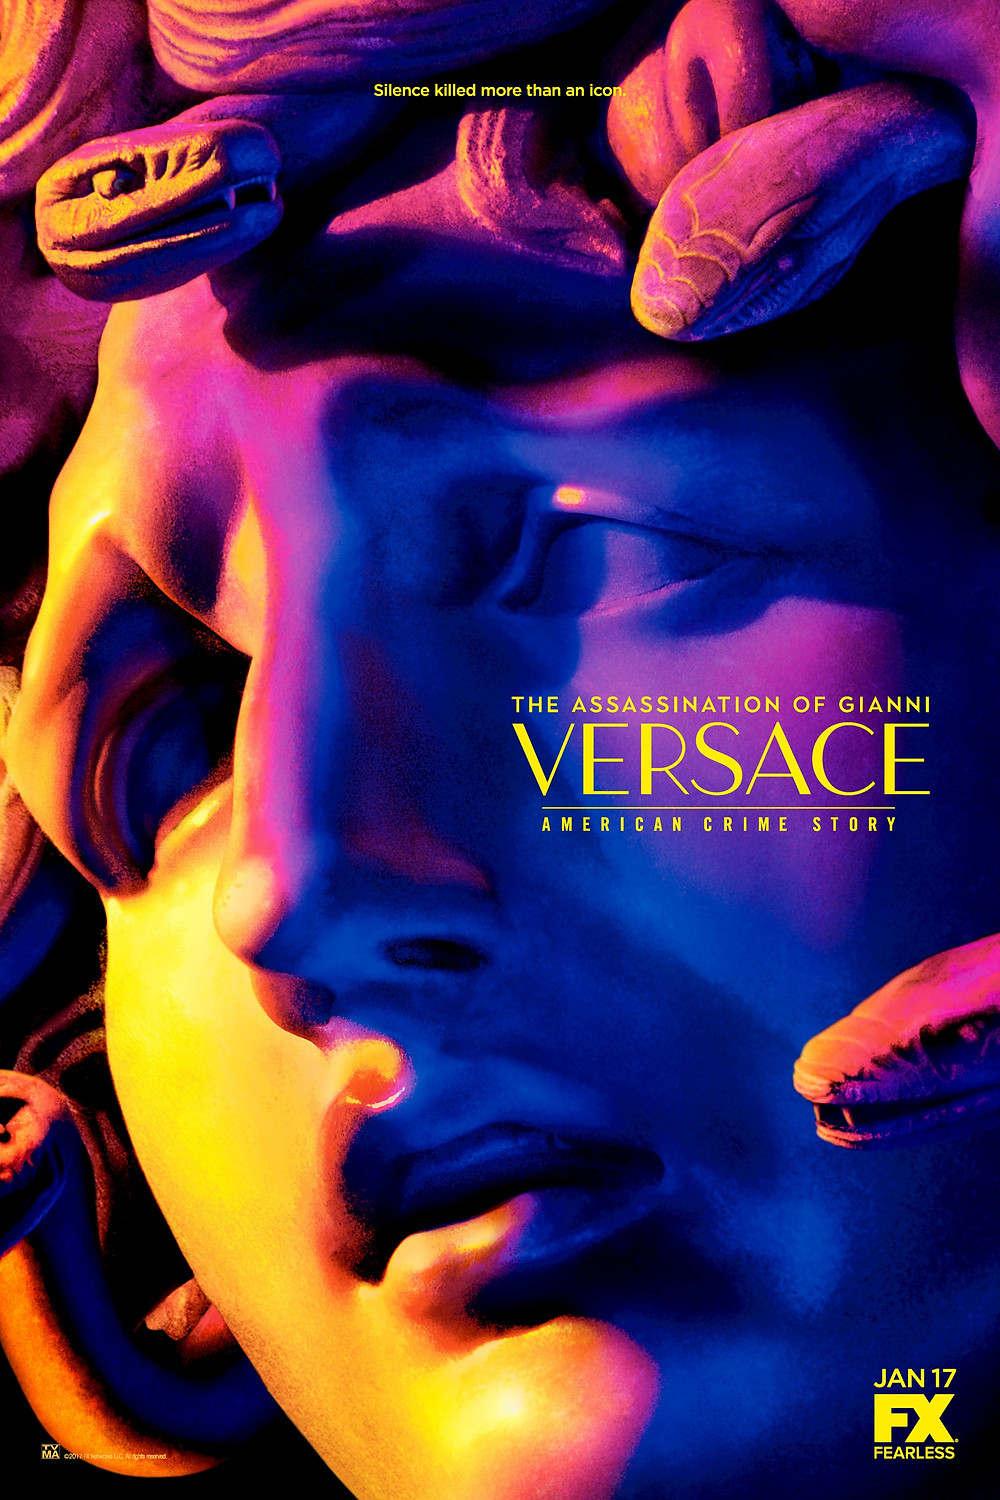 The Assassination of Gianni Versace by American Crime Story